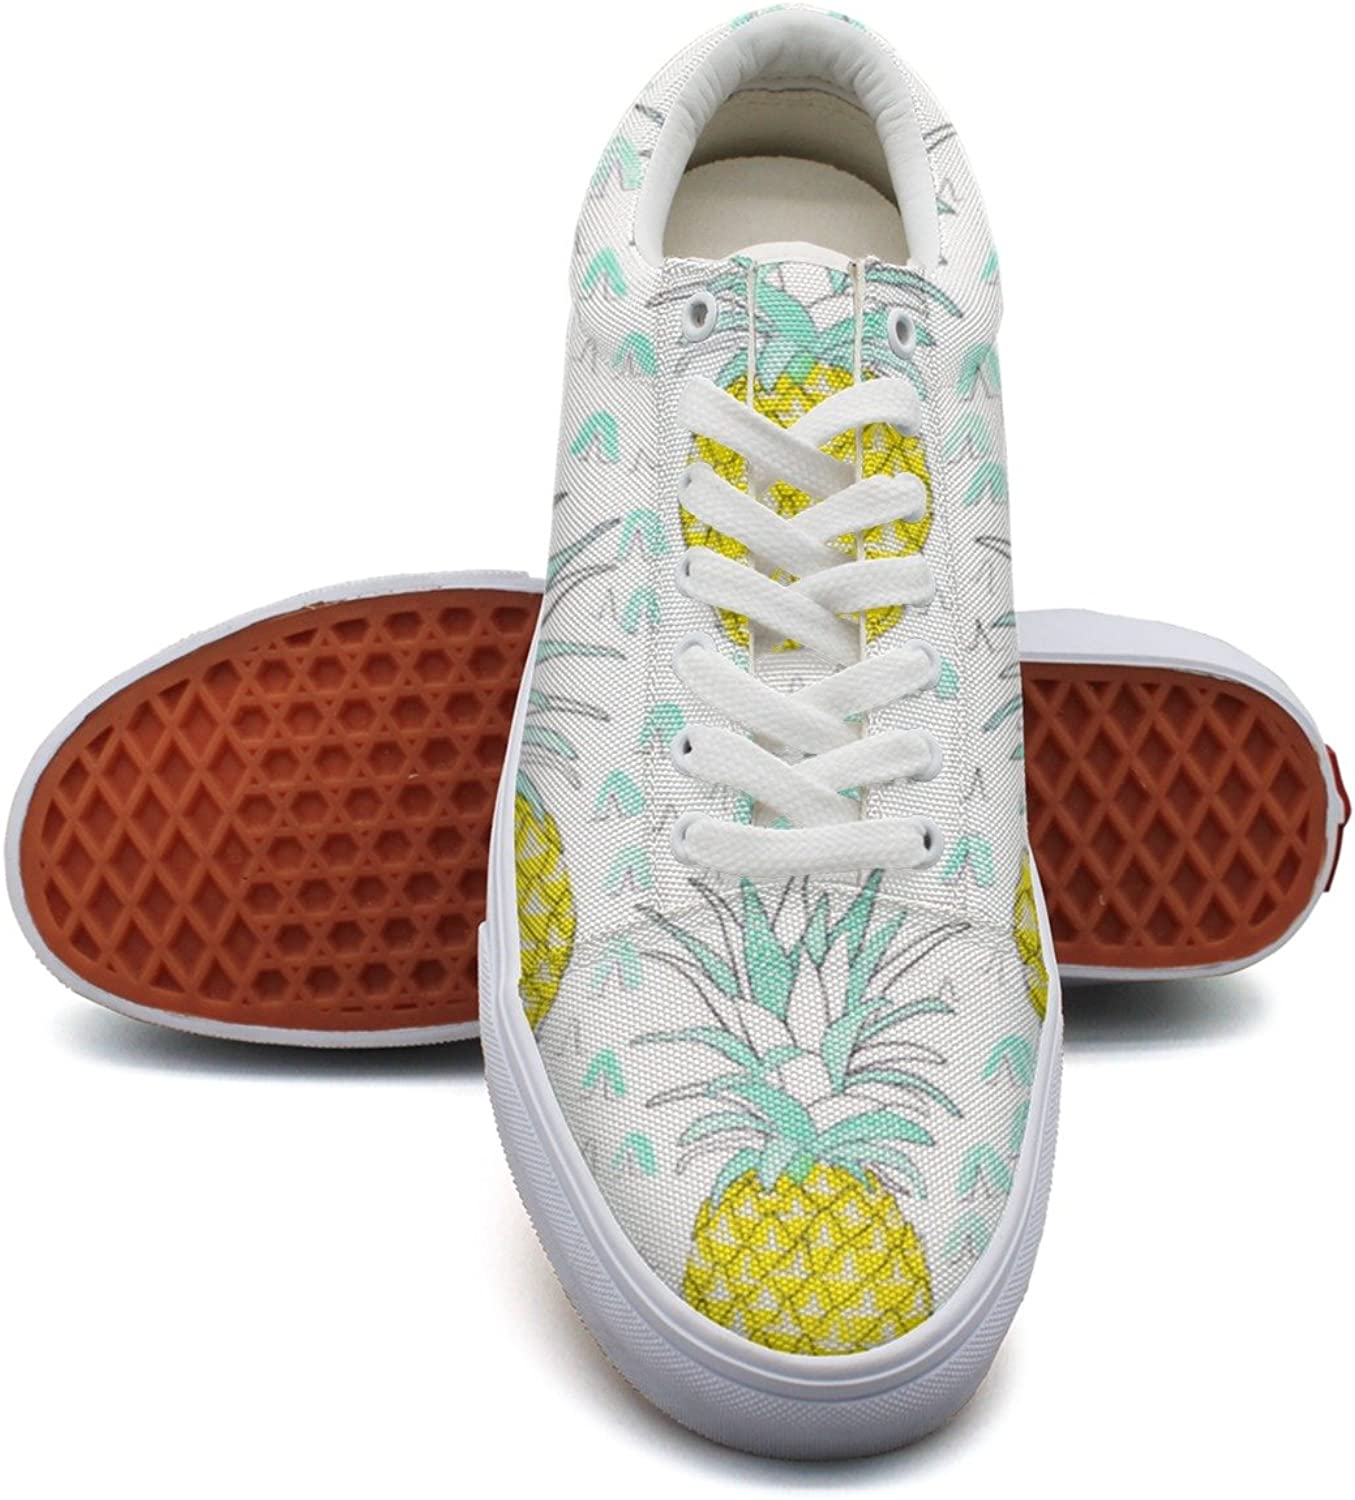 Feenfling Watercolor Pineapples Womens Casual Canvas Lace up Dhoes Low Top Vintage Volleyball Sneakers for Women's